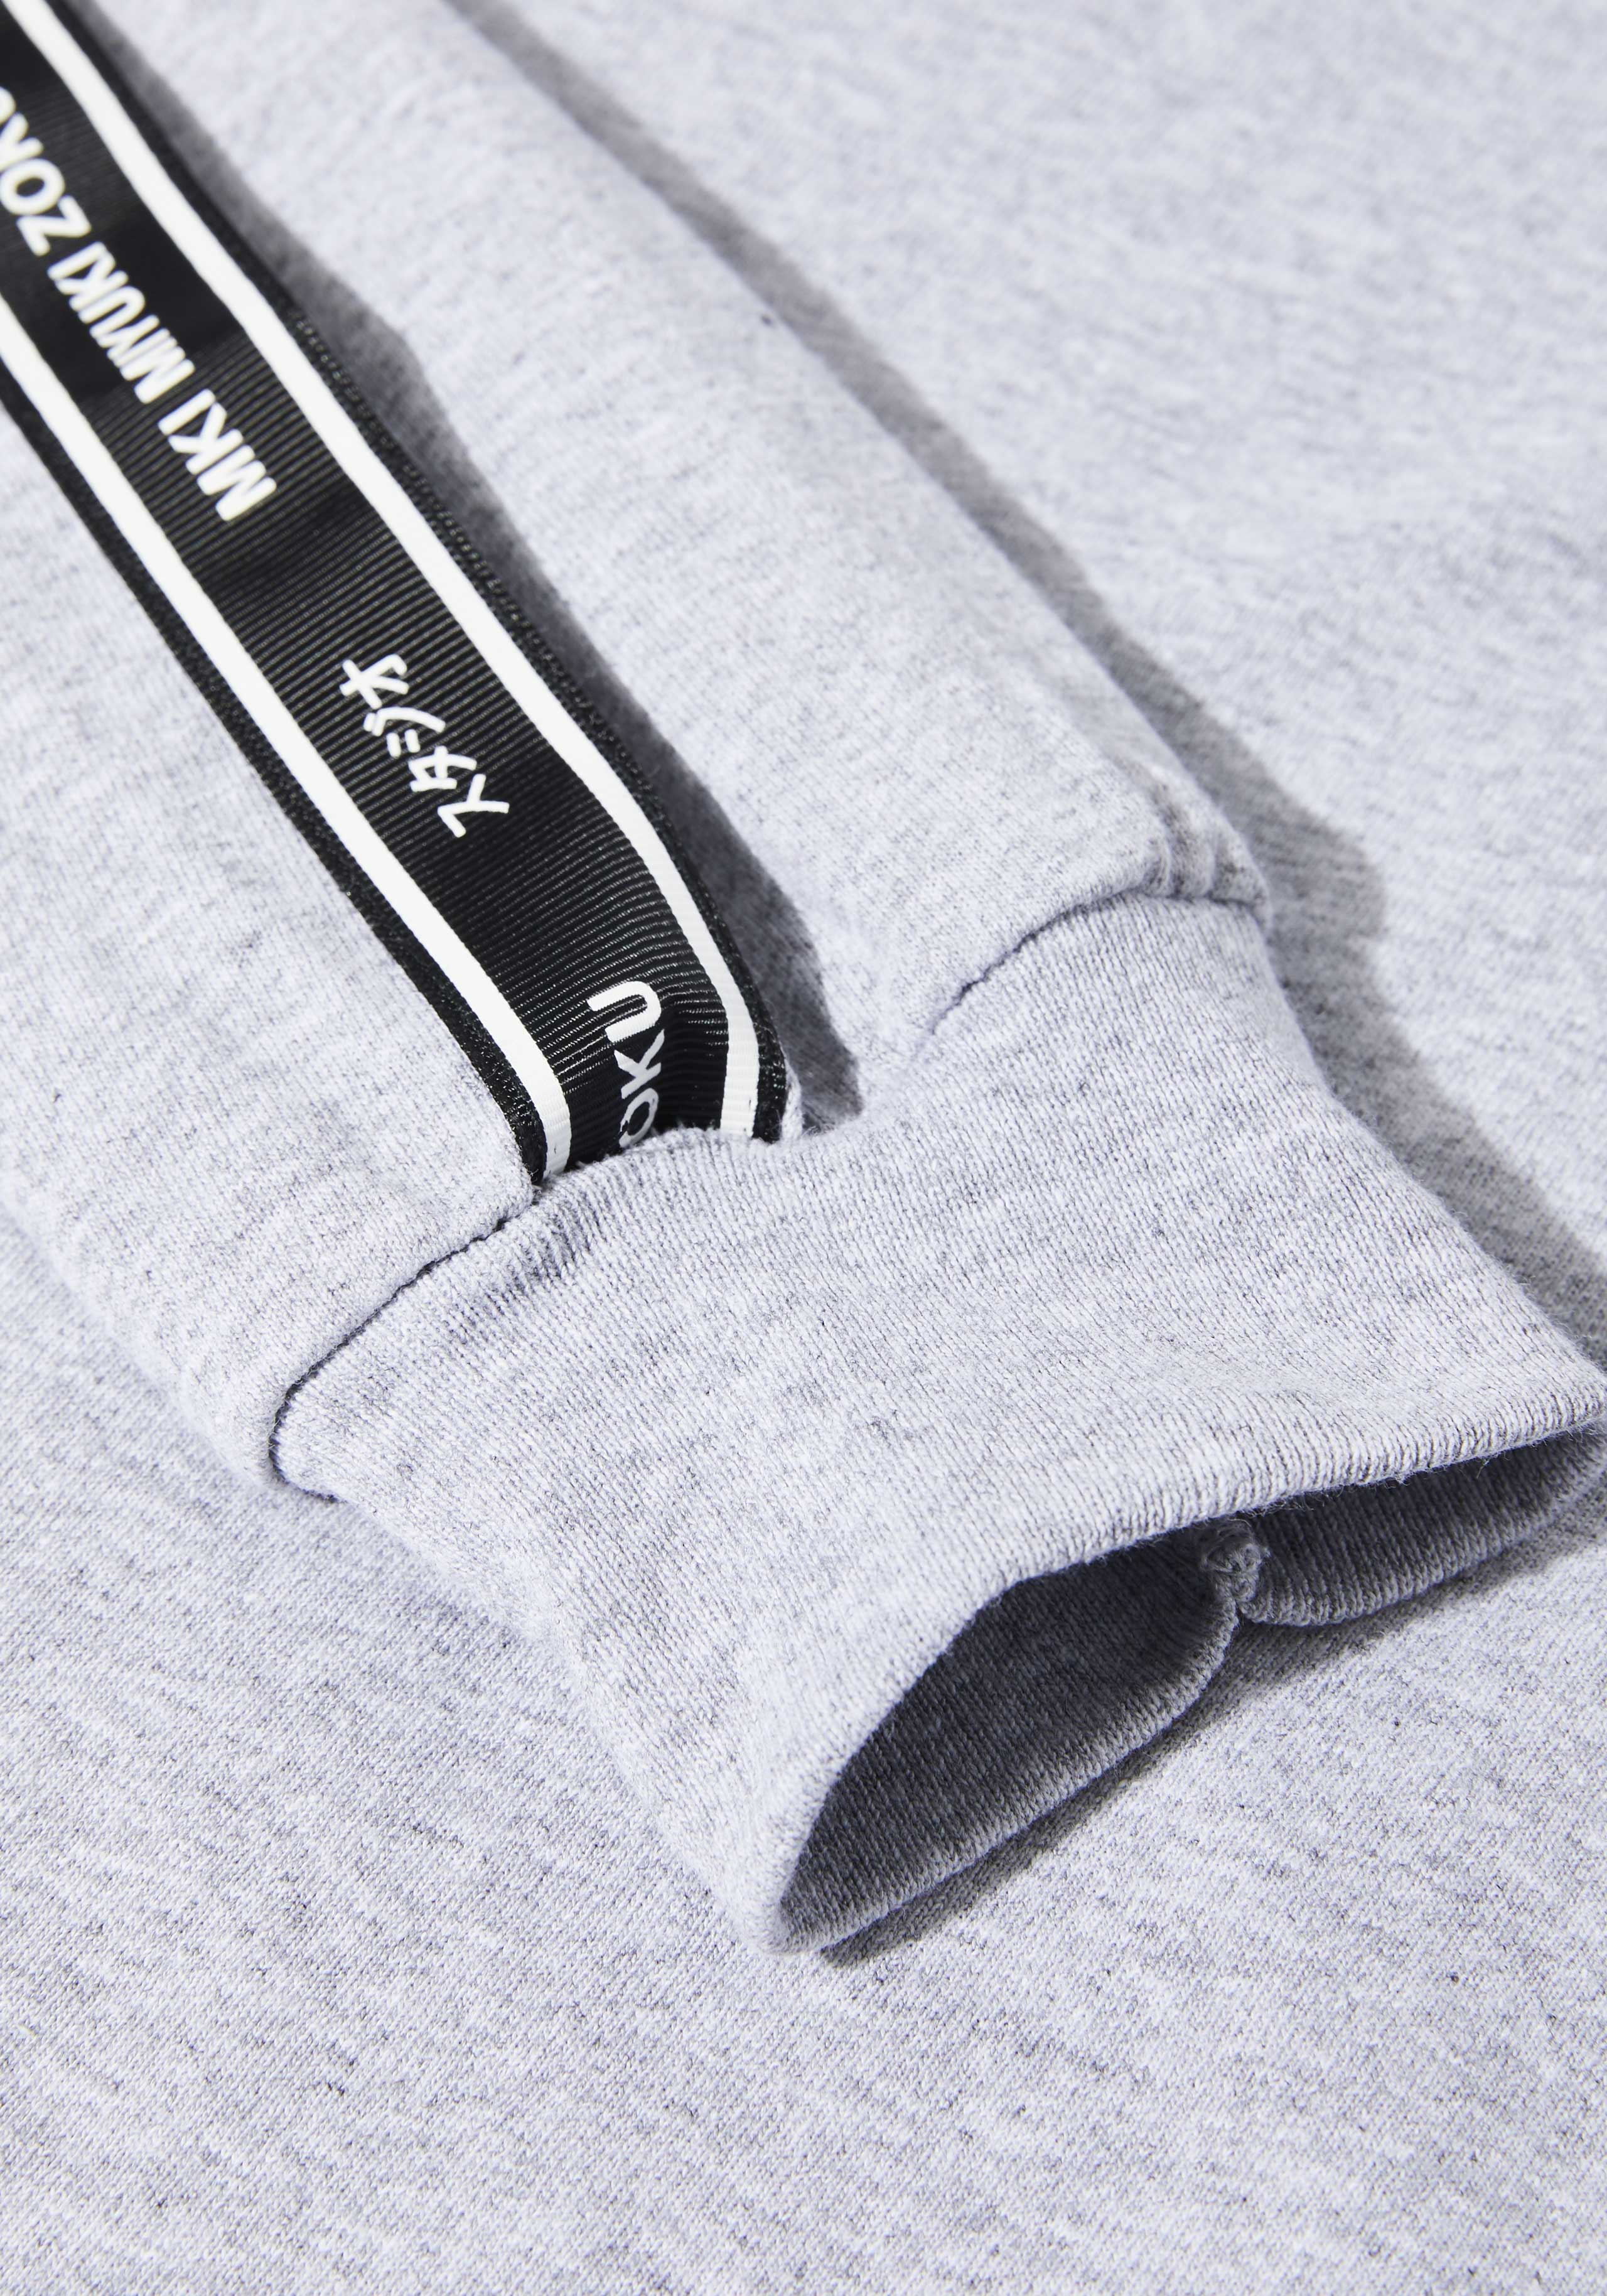 mki tape long sleeve 5